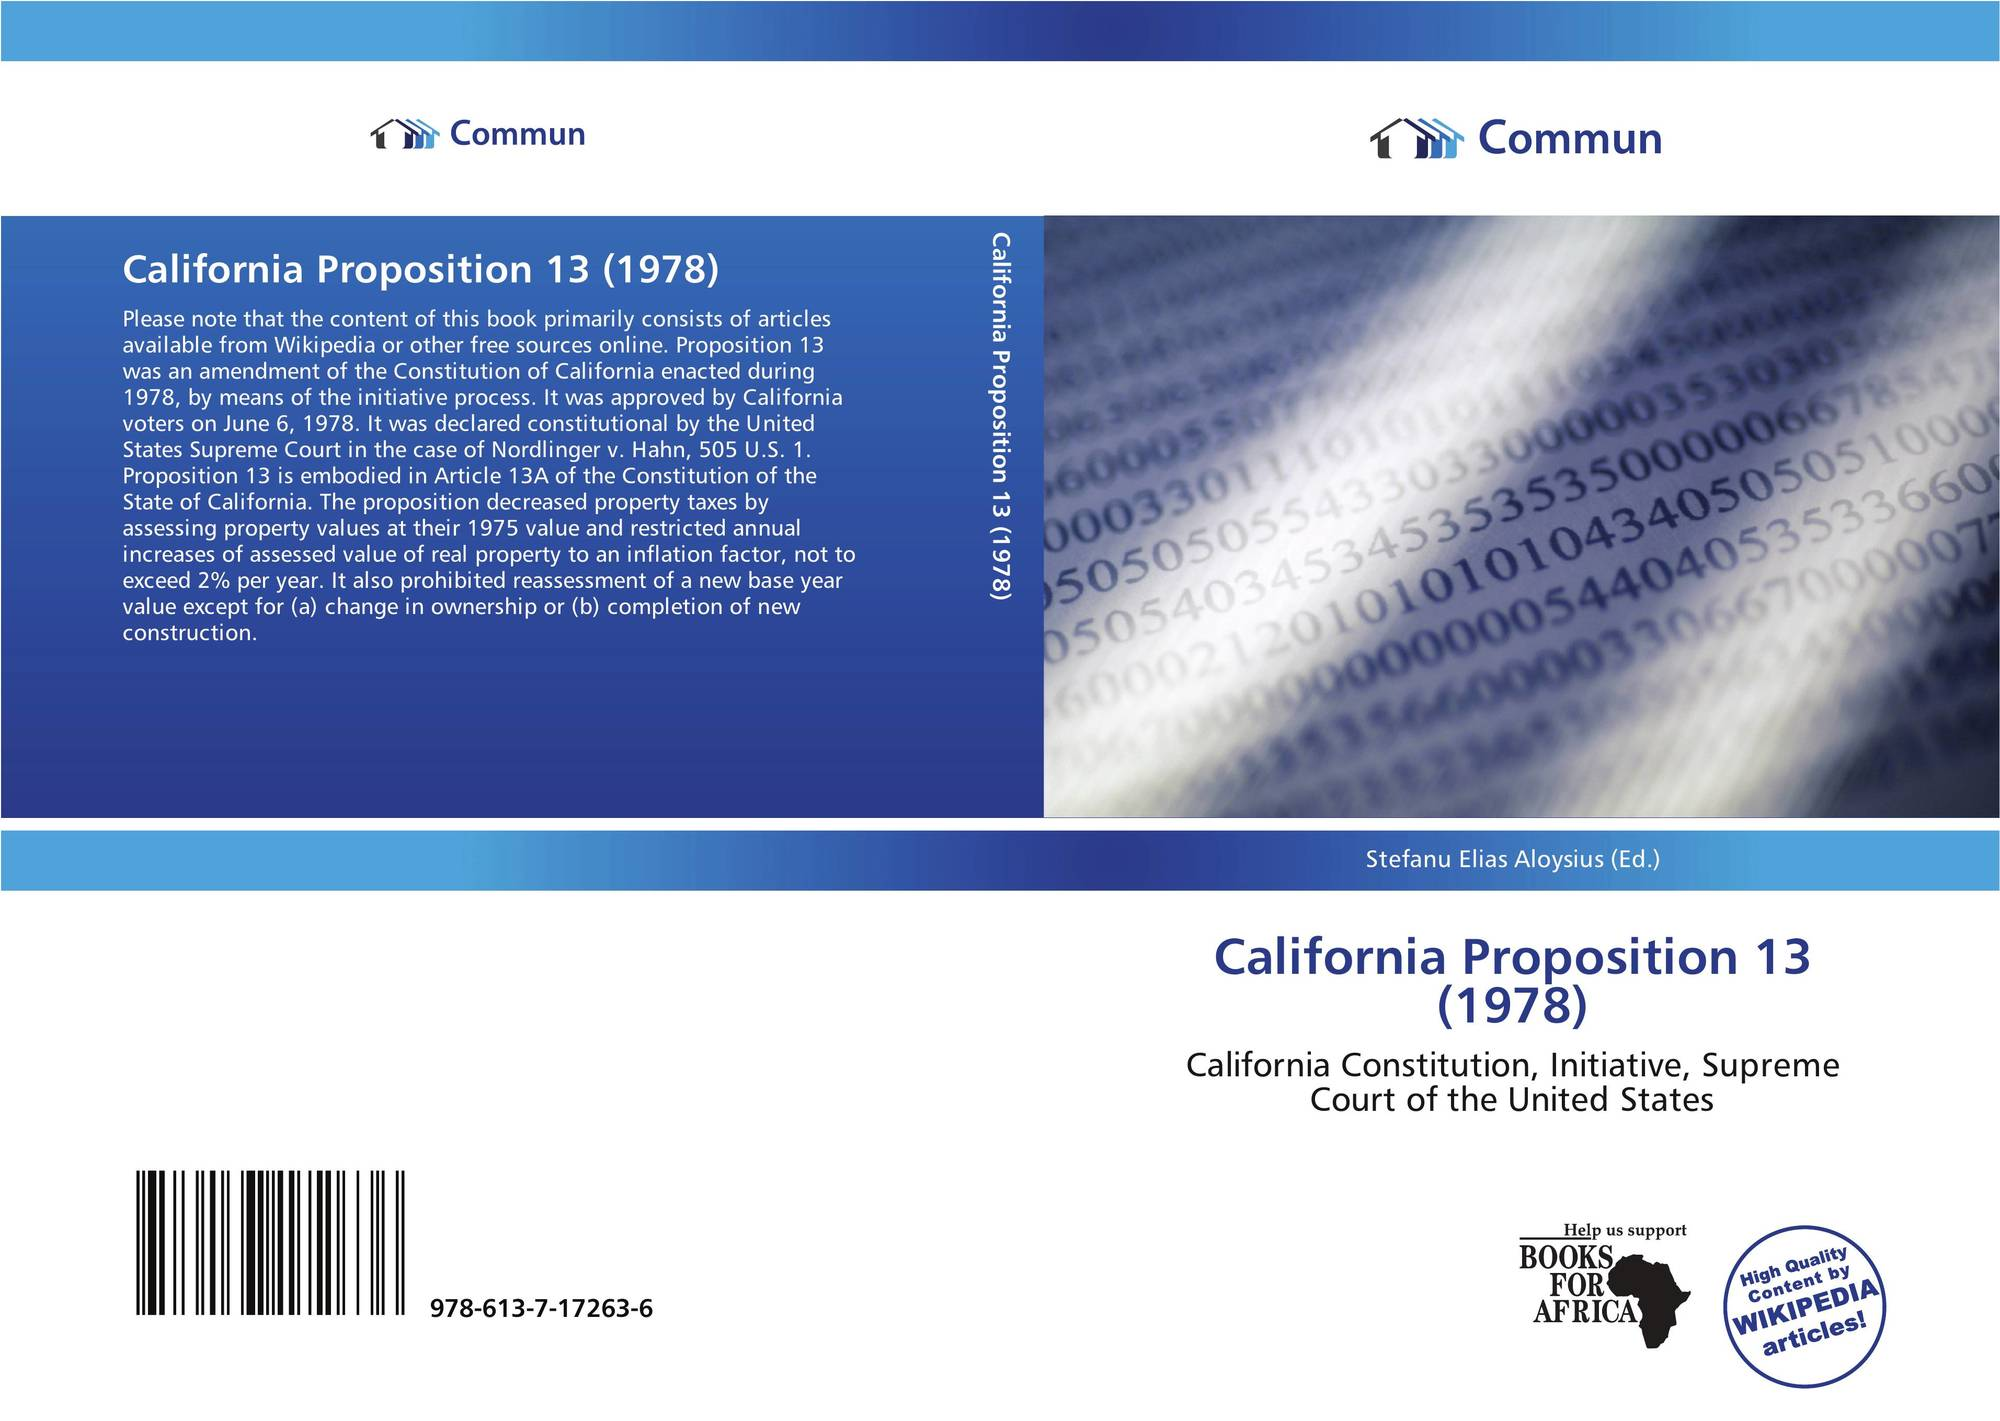 Prop 13 in California, 35 Years Later